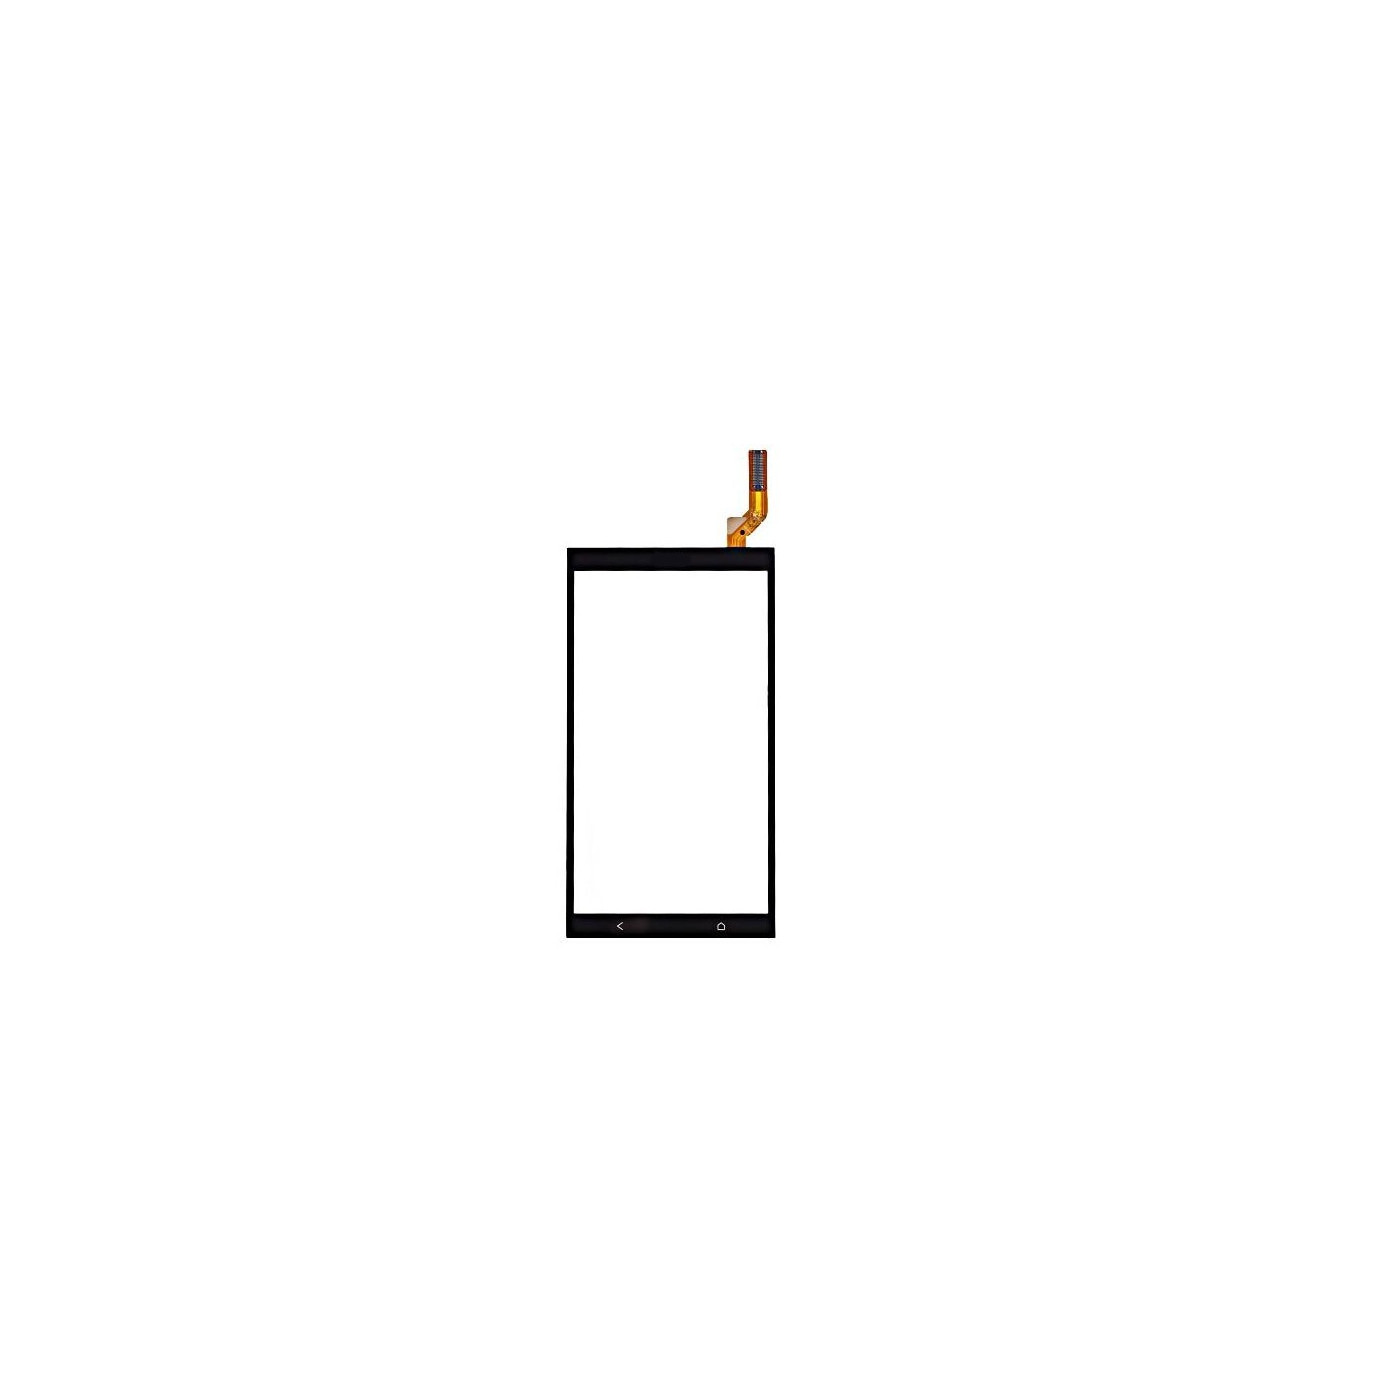 Glass + digitizer touch screen for HTC desire 700 black slide no LCD display